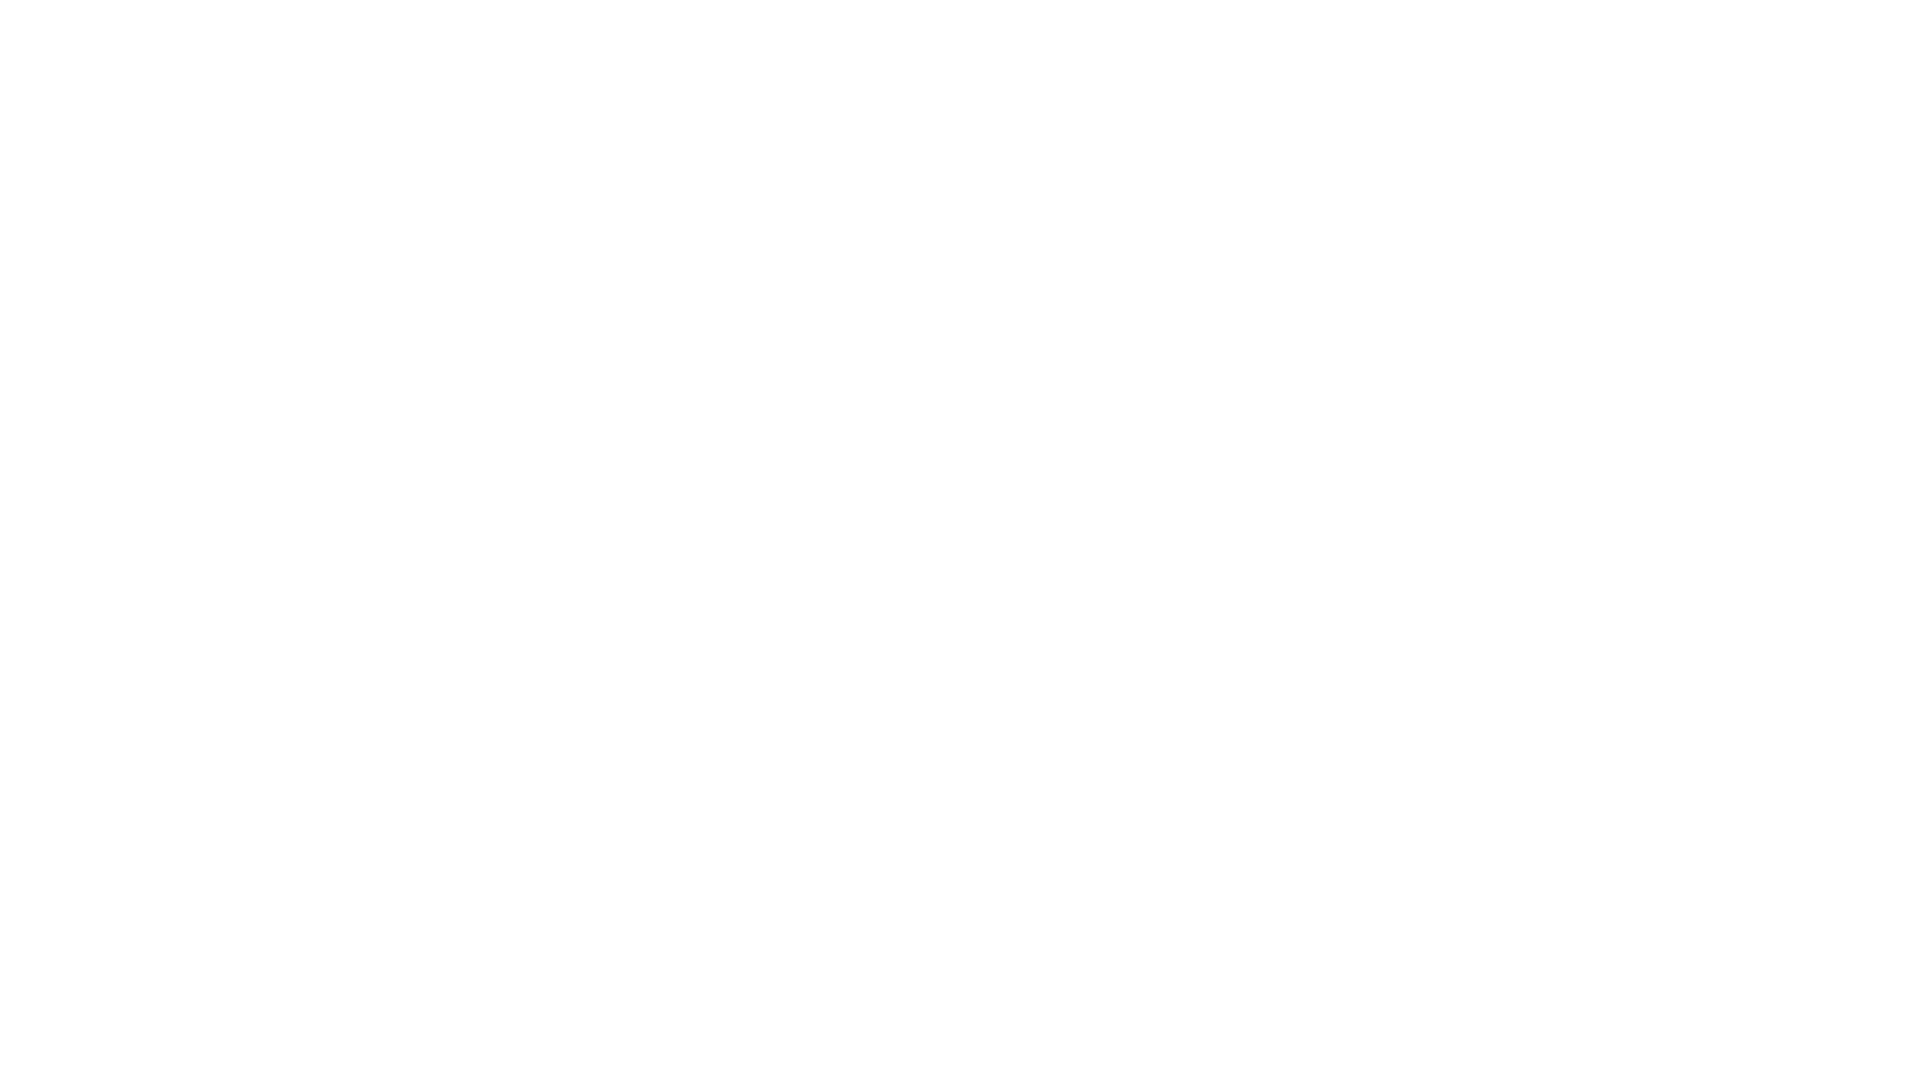 Rick and morty wallpaper png. X wallpapers enjoy